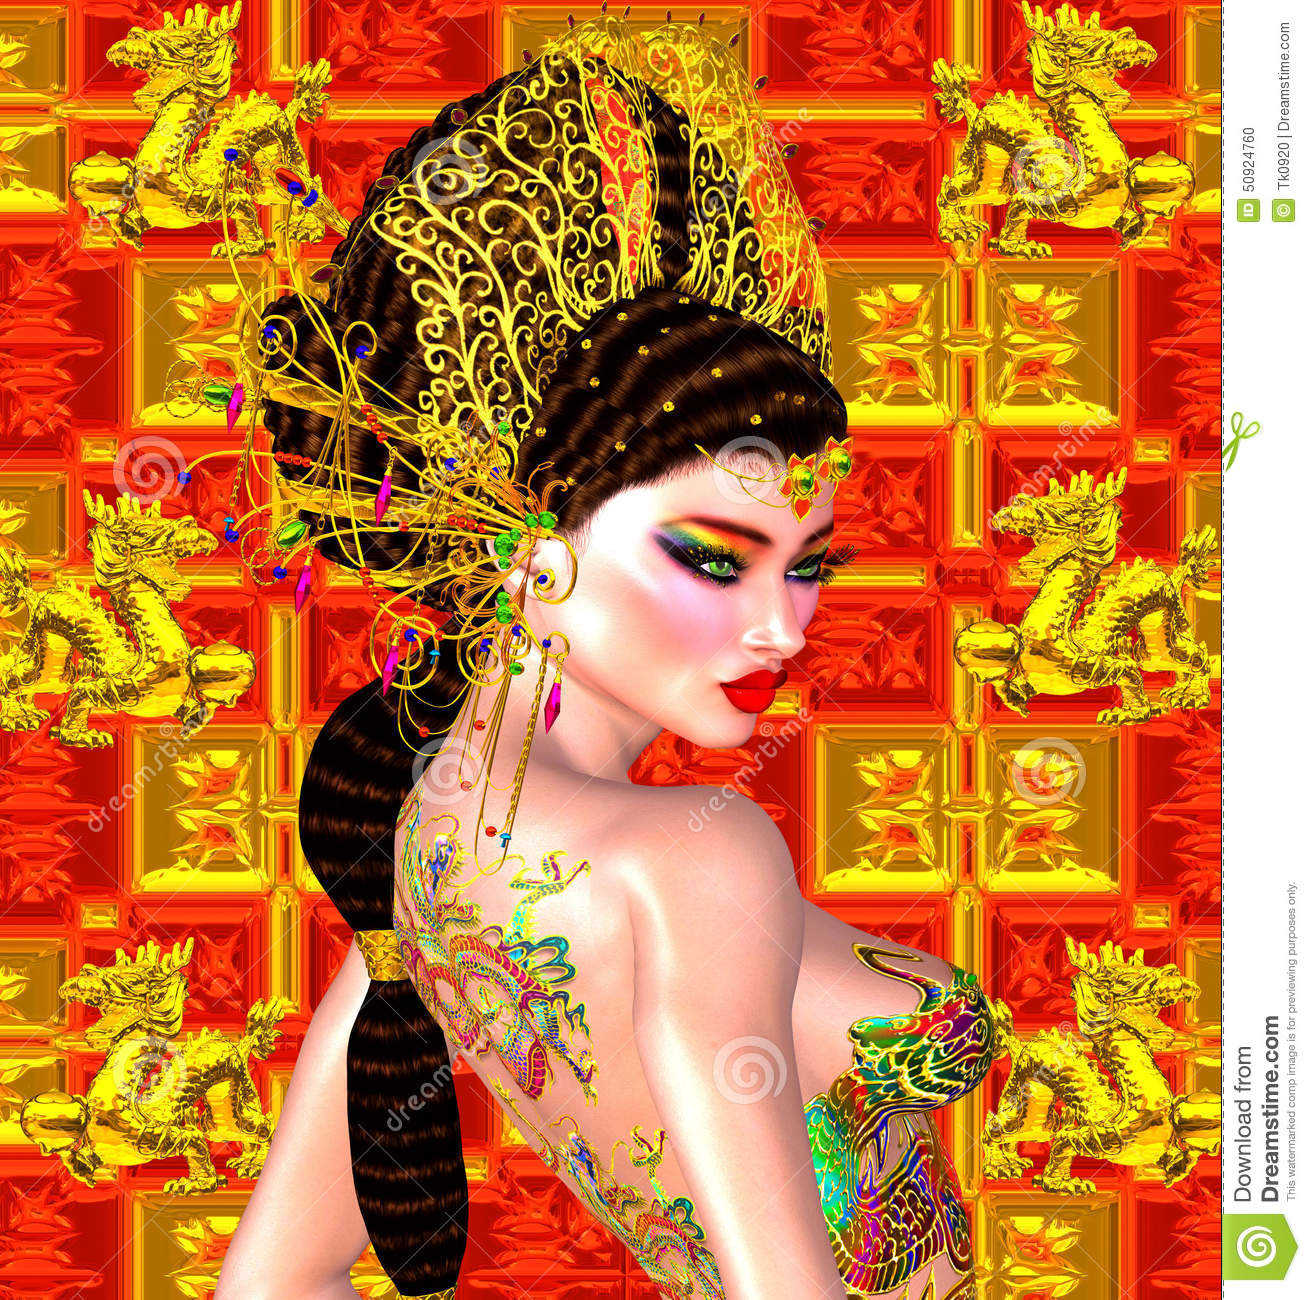 Asian beautiful woman, dragon tattoo on her back, colorful makeup and bra.